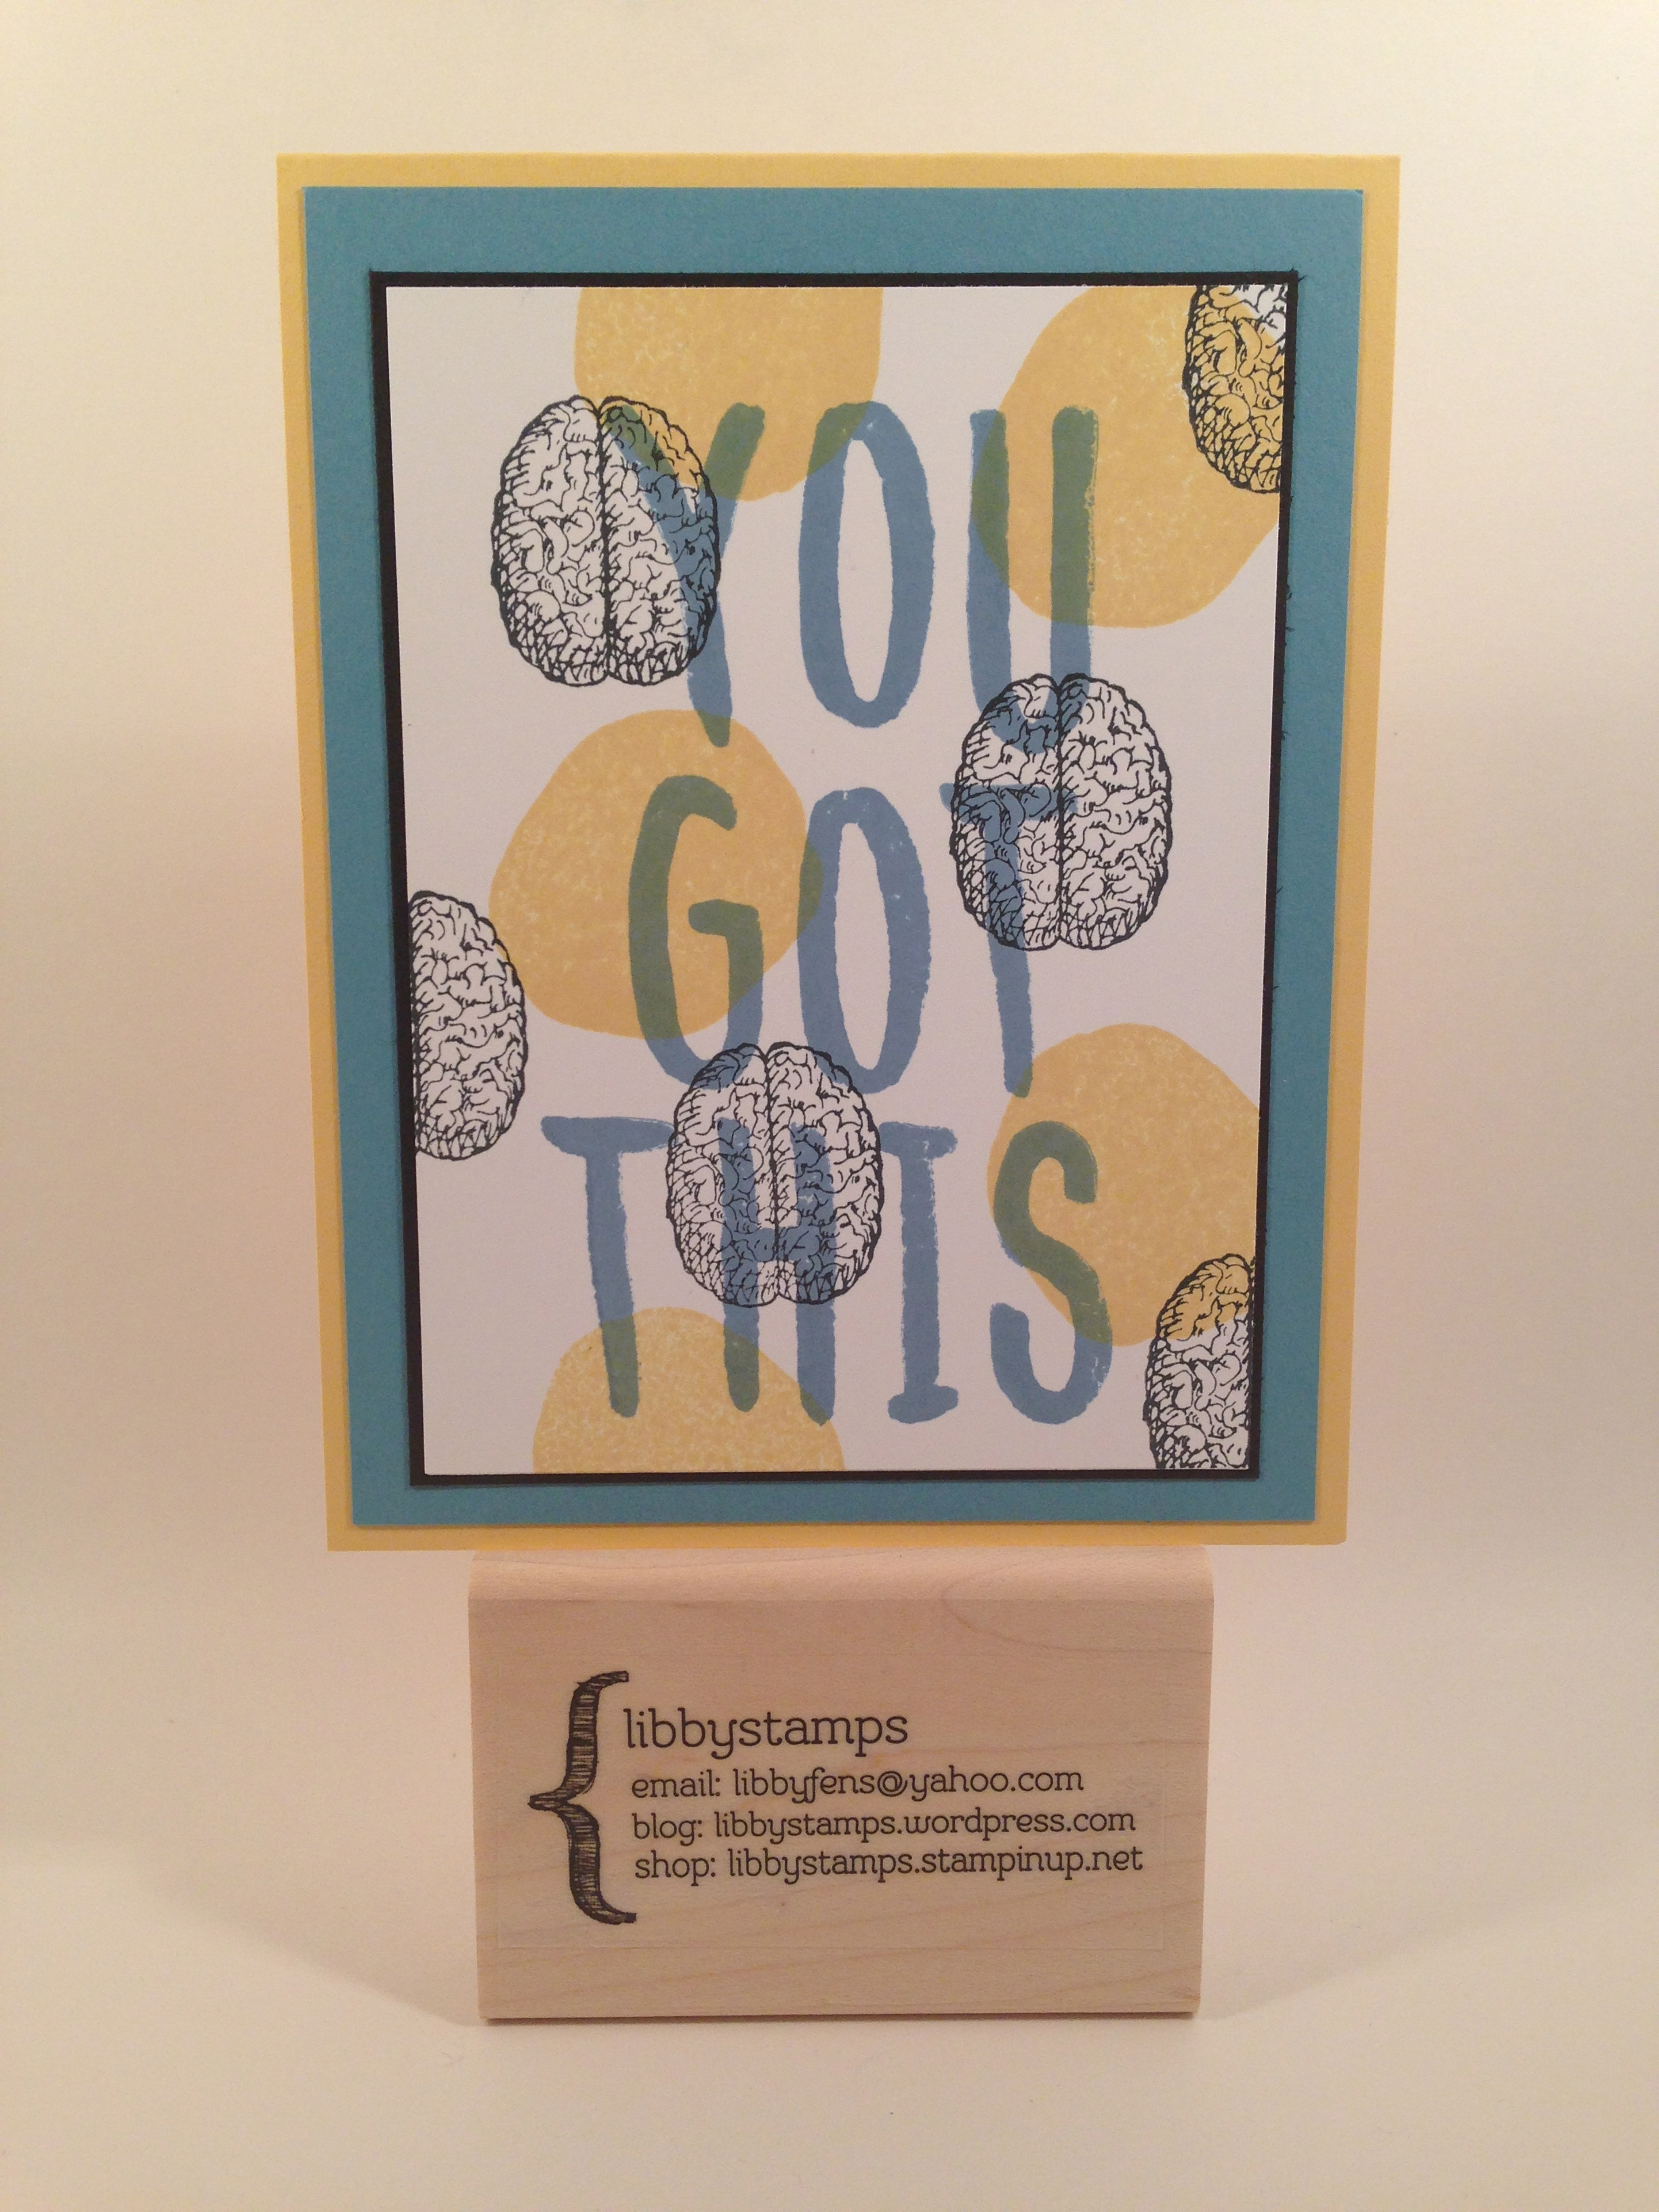 libbystamps, Stampin' Up, stampin up, Pomp & Circumstance, encouragement, Layered Letters Alphabet